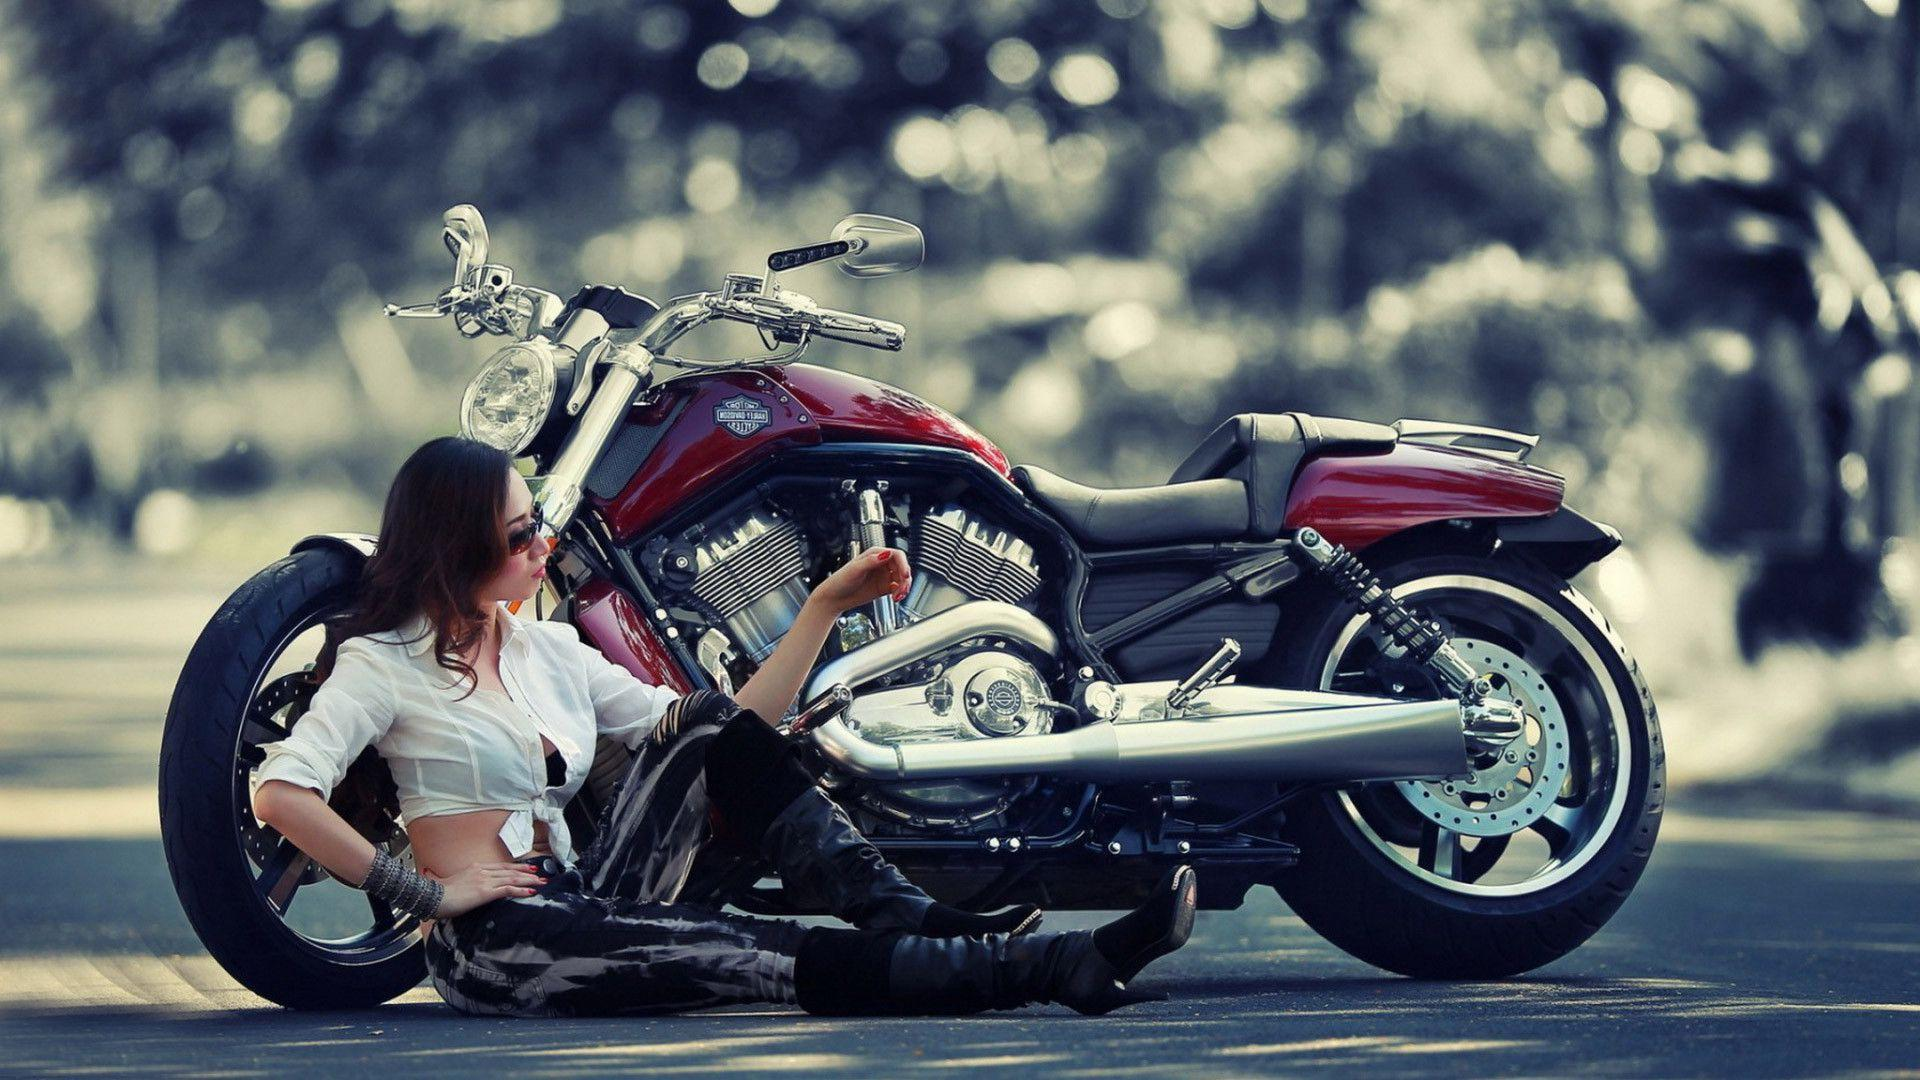 Wallpaper harley davidson impremedia harley davidson bikes wallpapers voltagebd Choice Image